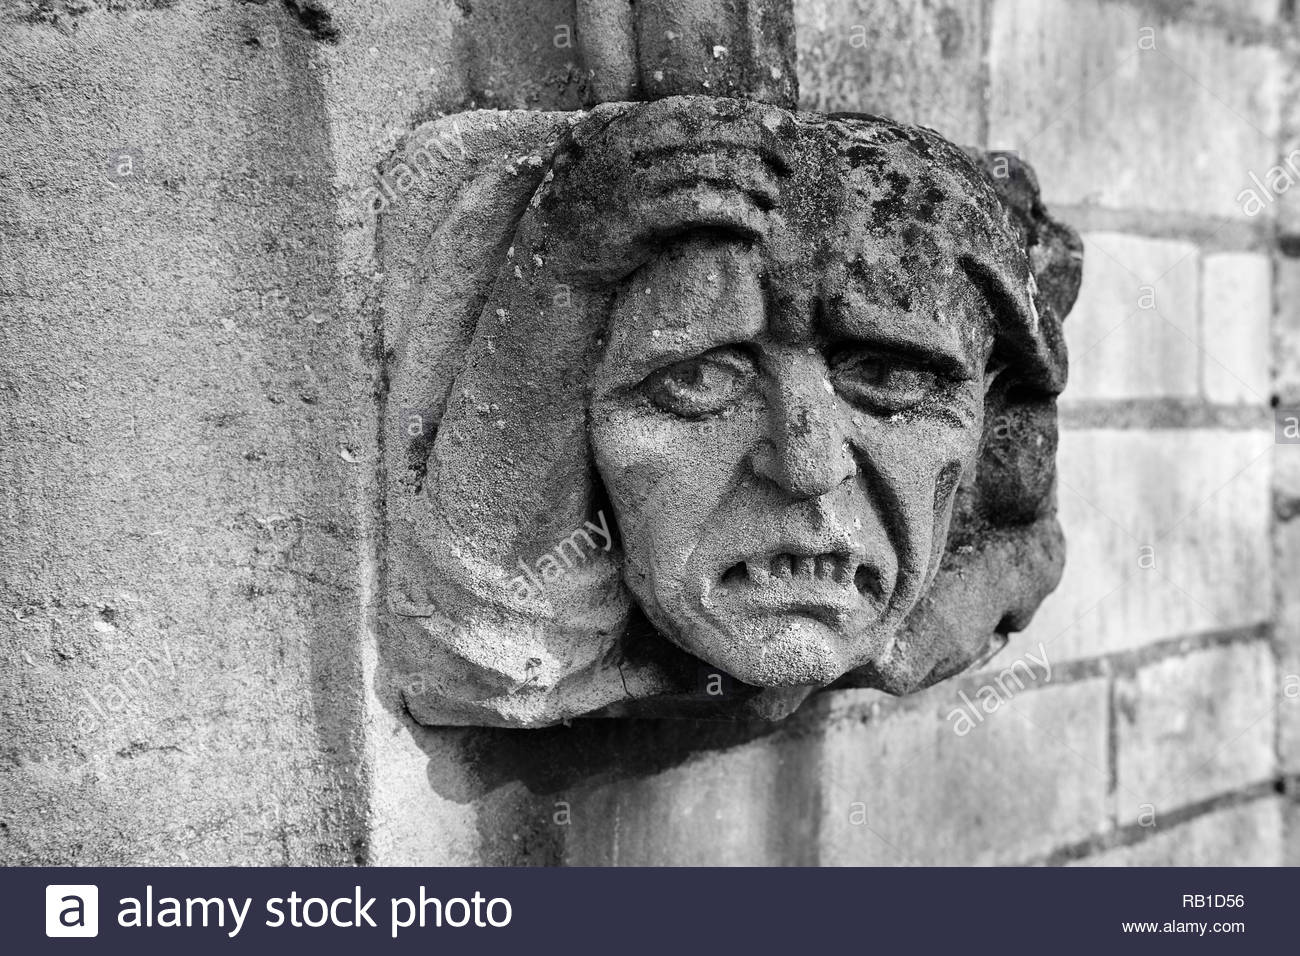 Ecclesiastical sculpture of a grotesque face caved in stone decorating the entrance to a church, Eaton Socon, UK. Stock Photo